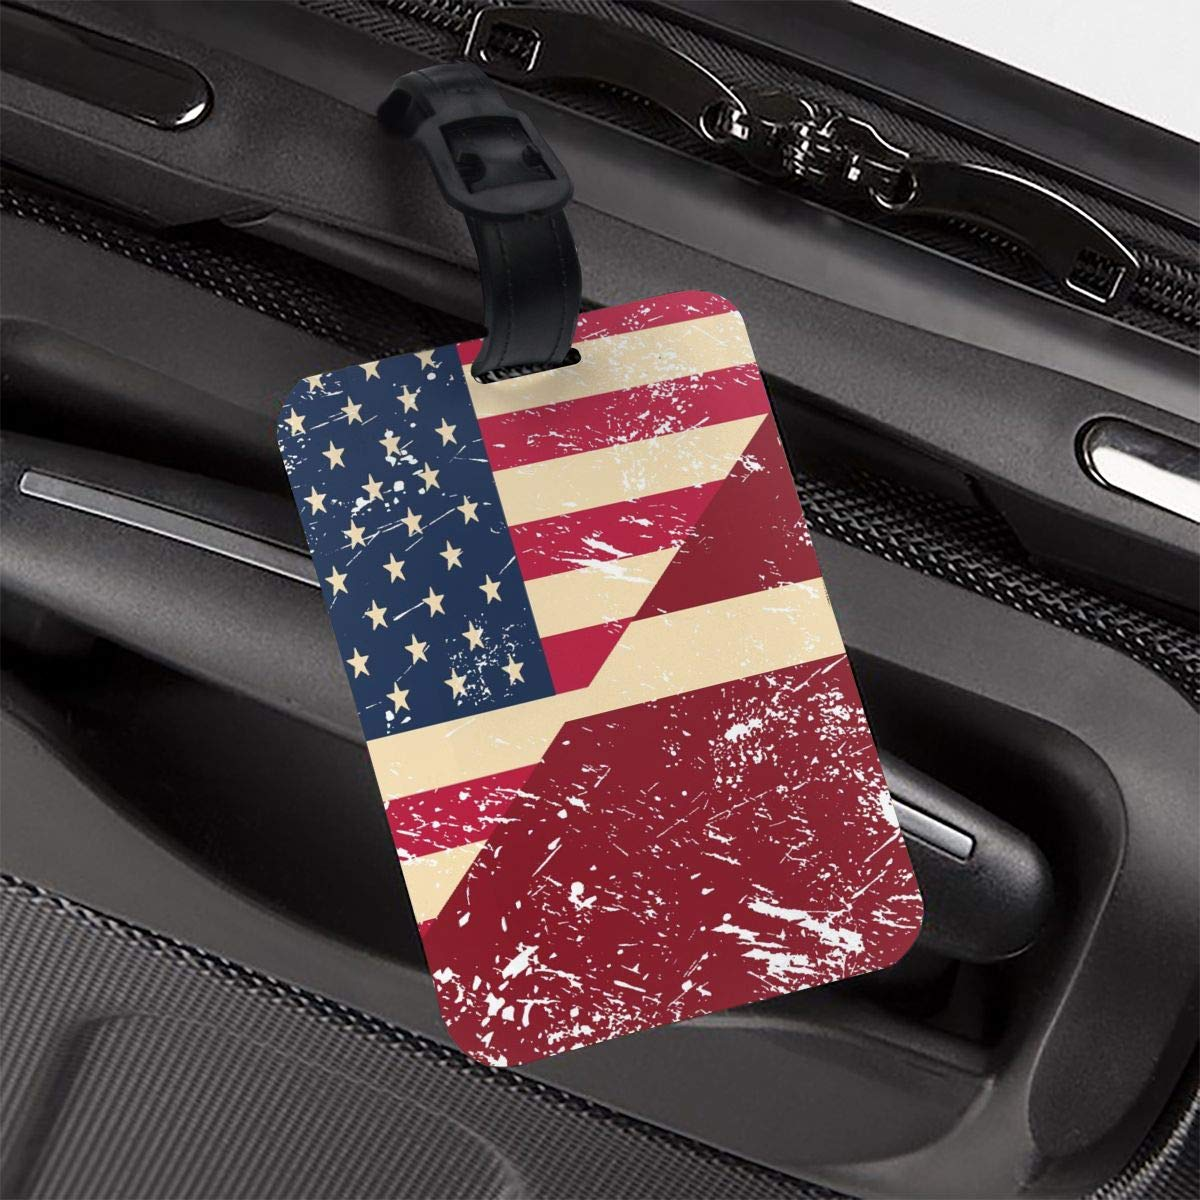 NB UUD American and Latvia Retro Flag Travel Luggage Tag Portable Employees Card Luggage Tag Holders Travel ID Identification Labels for Baggage Suitcases Bags